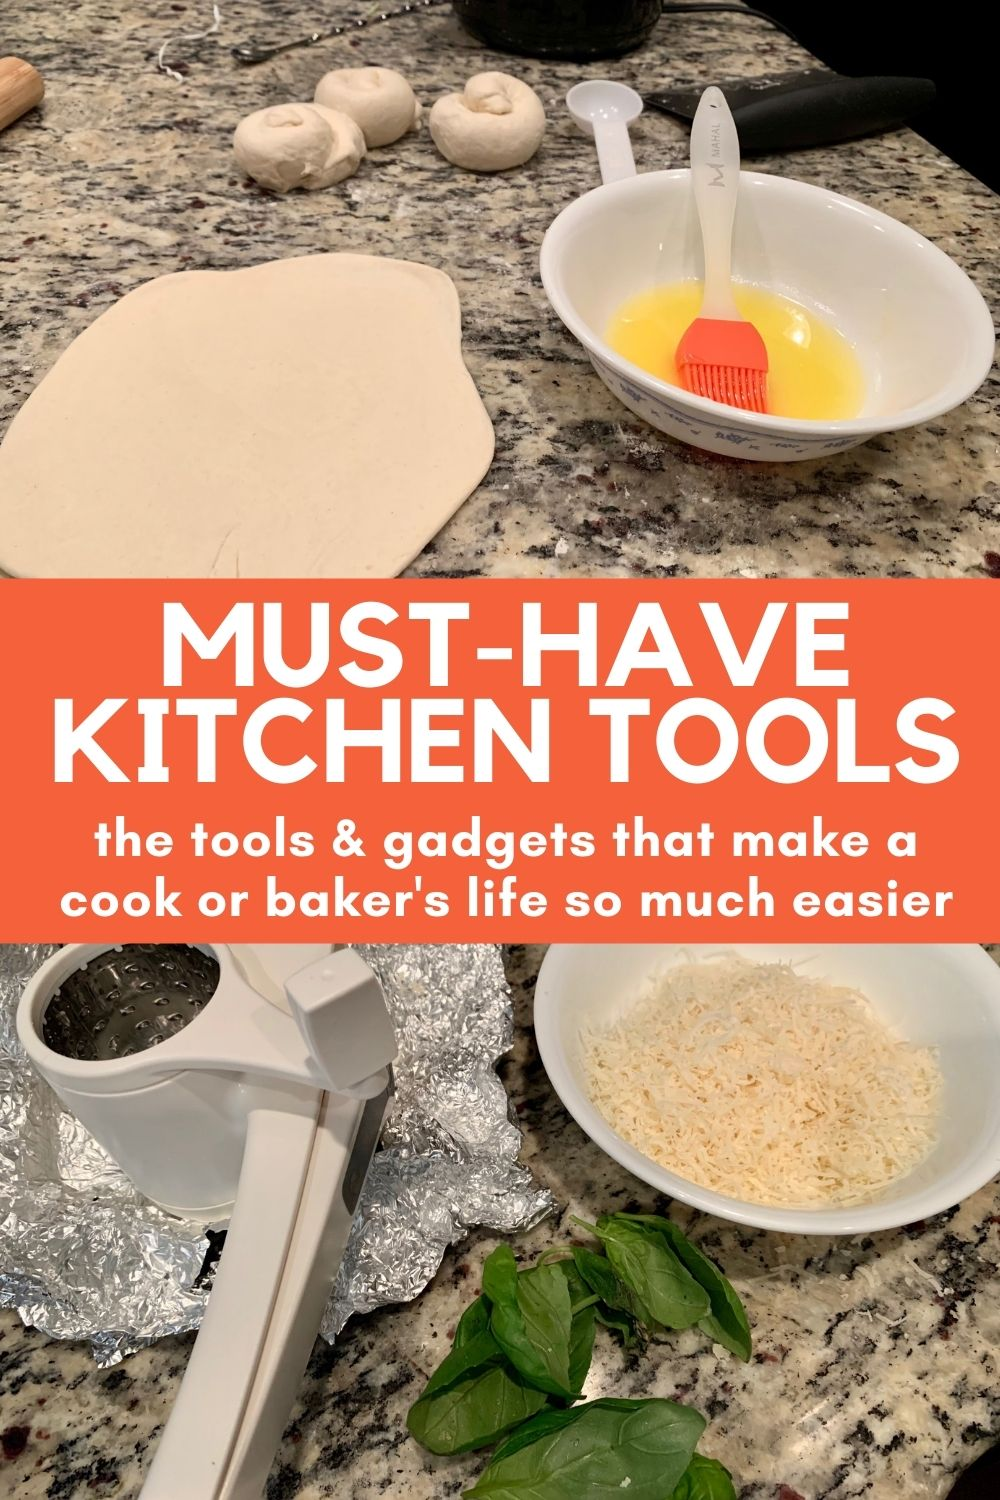 The Best Kitchen Gadgets & Tools for Every Cook or Baker | Having the right tools makes such a difference! These are must-have kitchen items that make things easier, faster, and better...from quality baking tools, to gadgets like a hand mill grater for cheese, immersion blender, and so much more | finding time for cooking #kitchengadgets #musthave #kitchentools